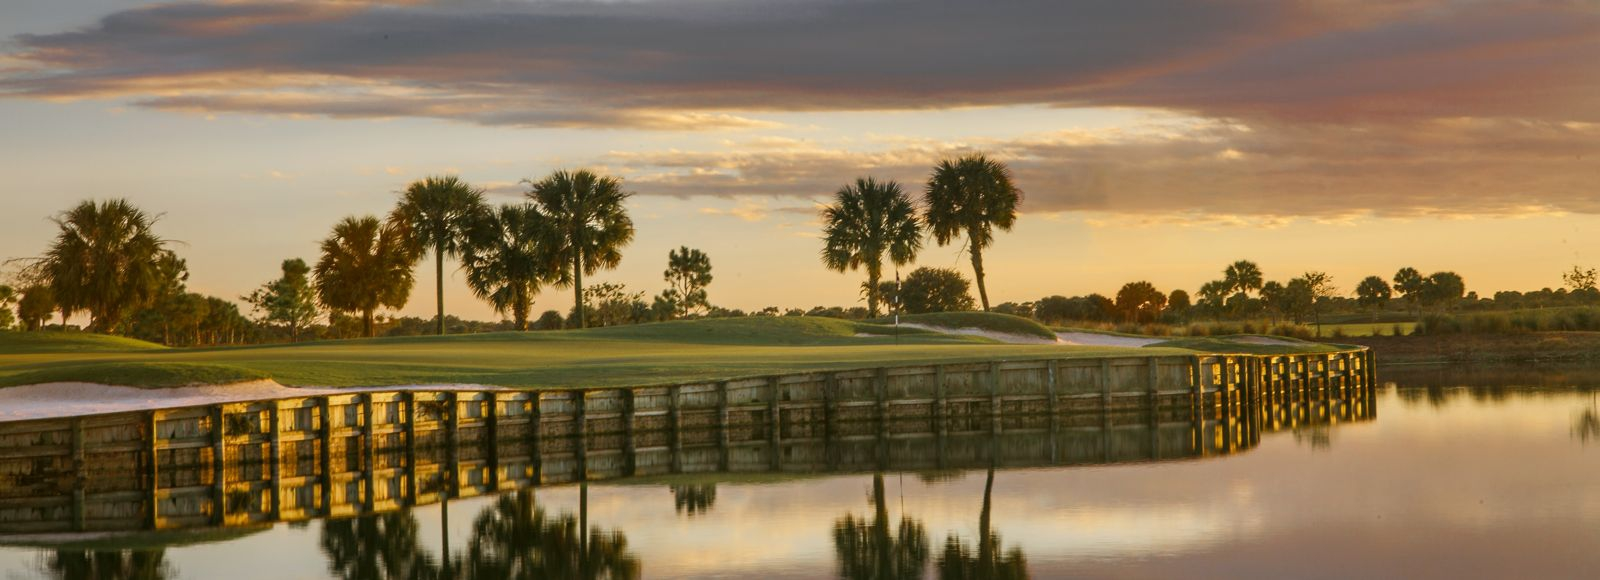 Sarasota National Golf Club Homes for Sale